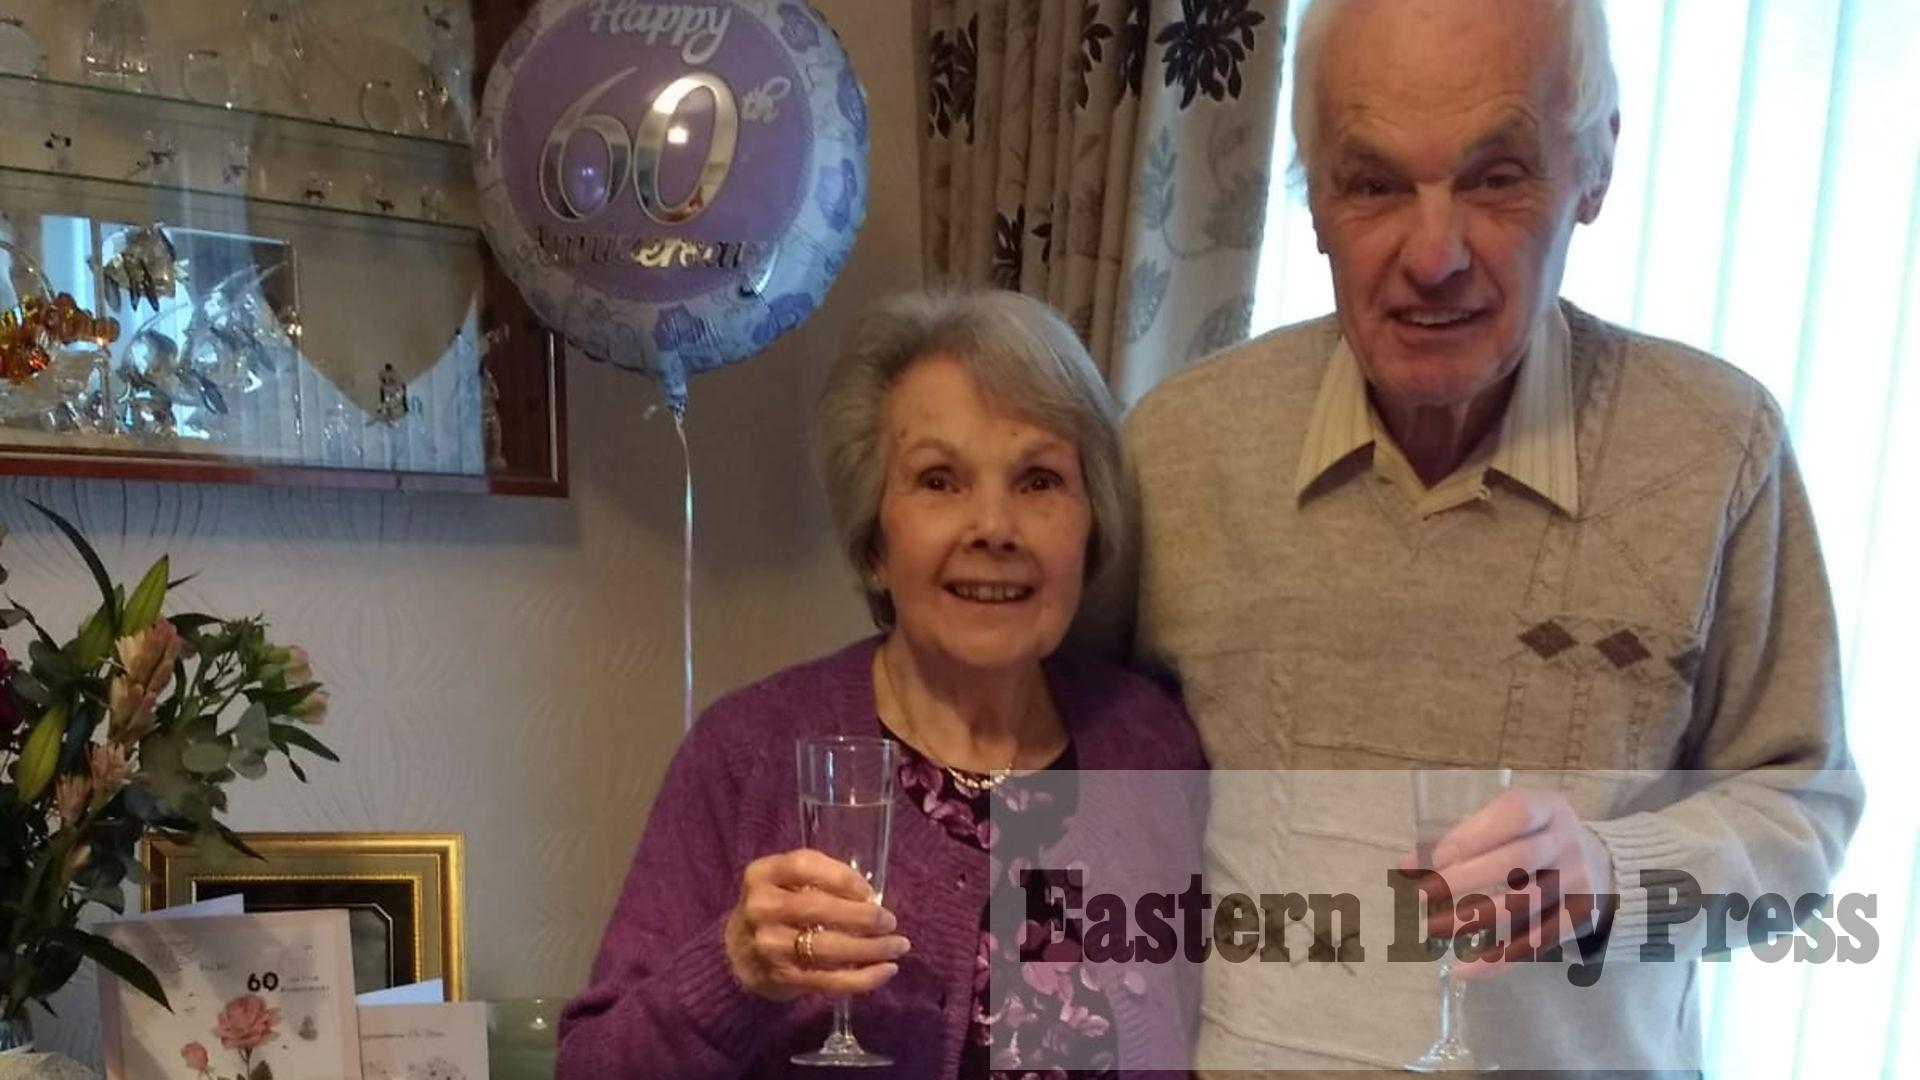 Couple who met at youth club celebrate 60 year anniversary